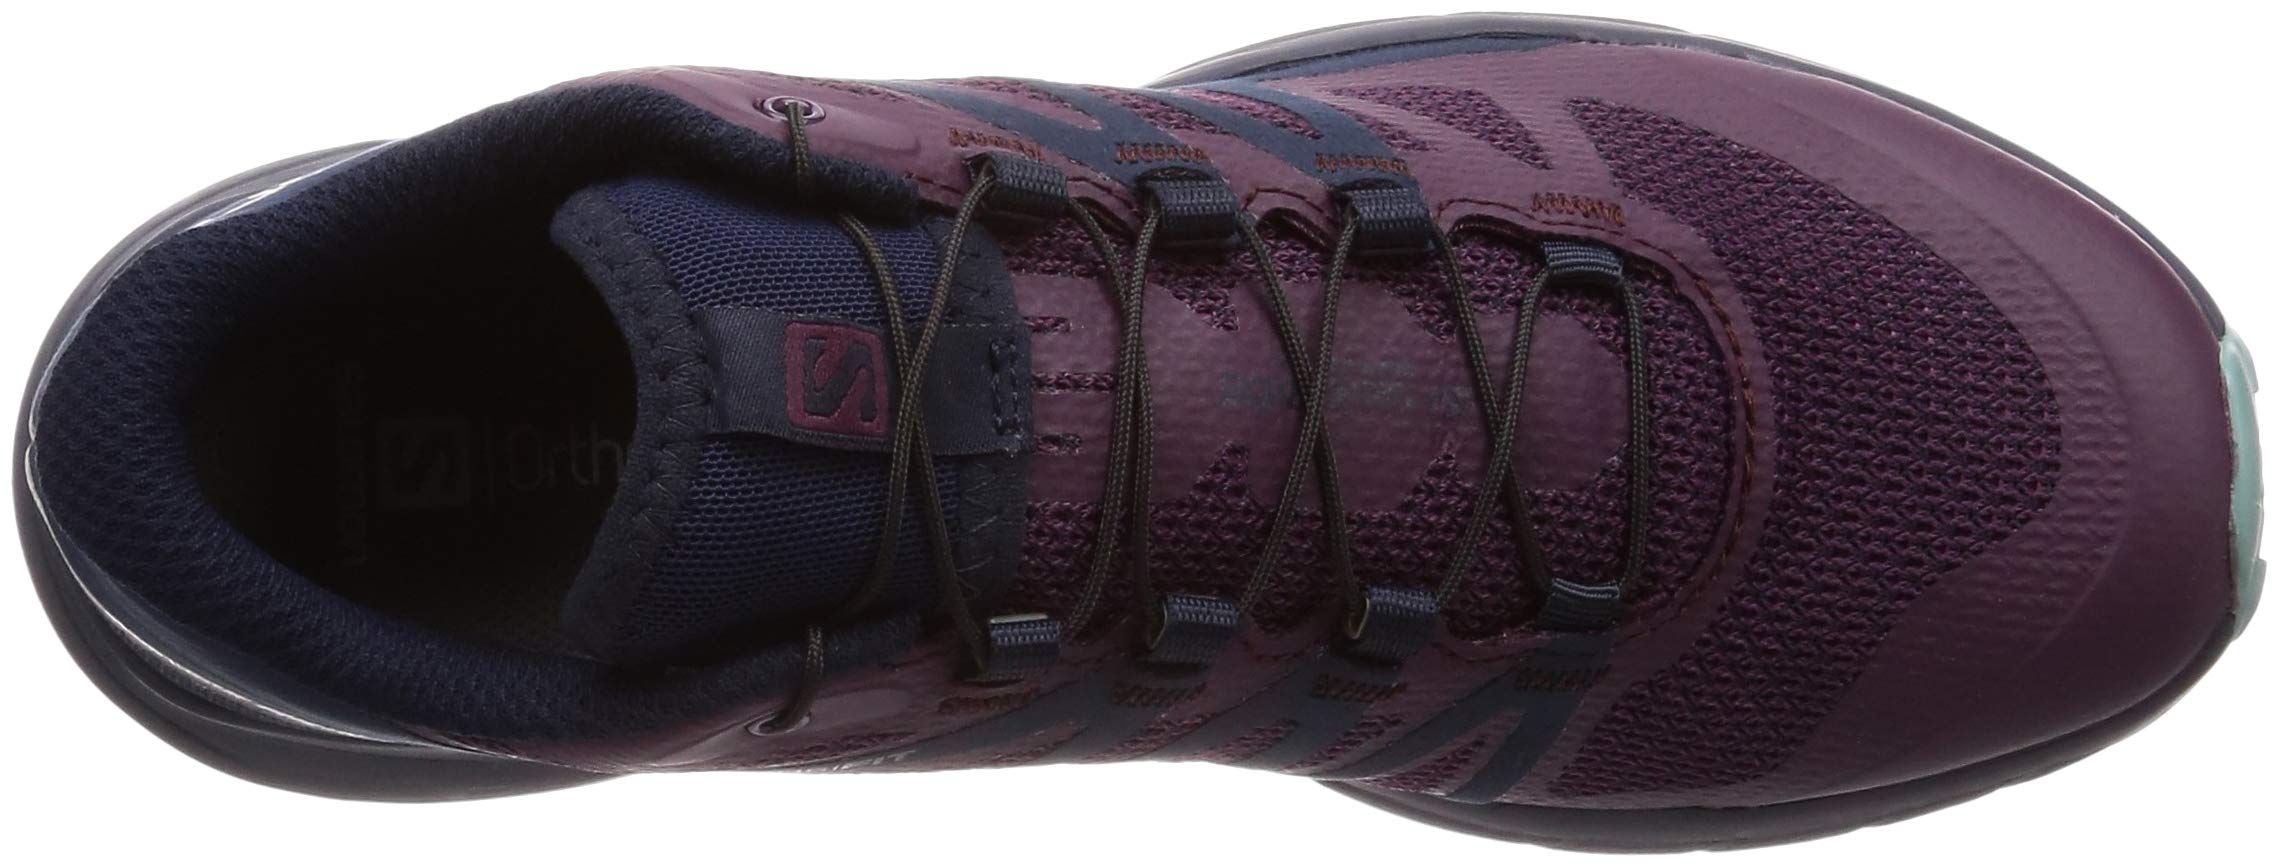 Salomon Sense Ride Running Shoe - Women's Potent Purple/Graphite/Navy Blazer 6 by Salomon (Image #7)